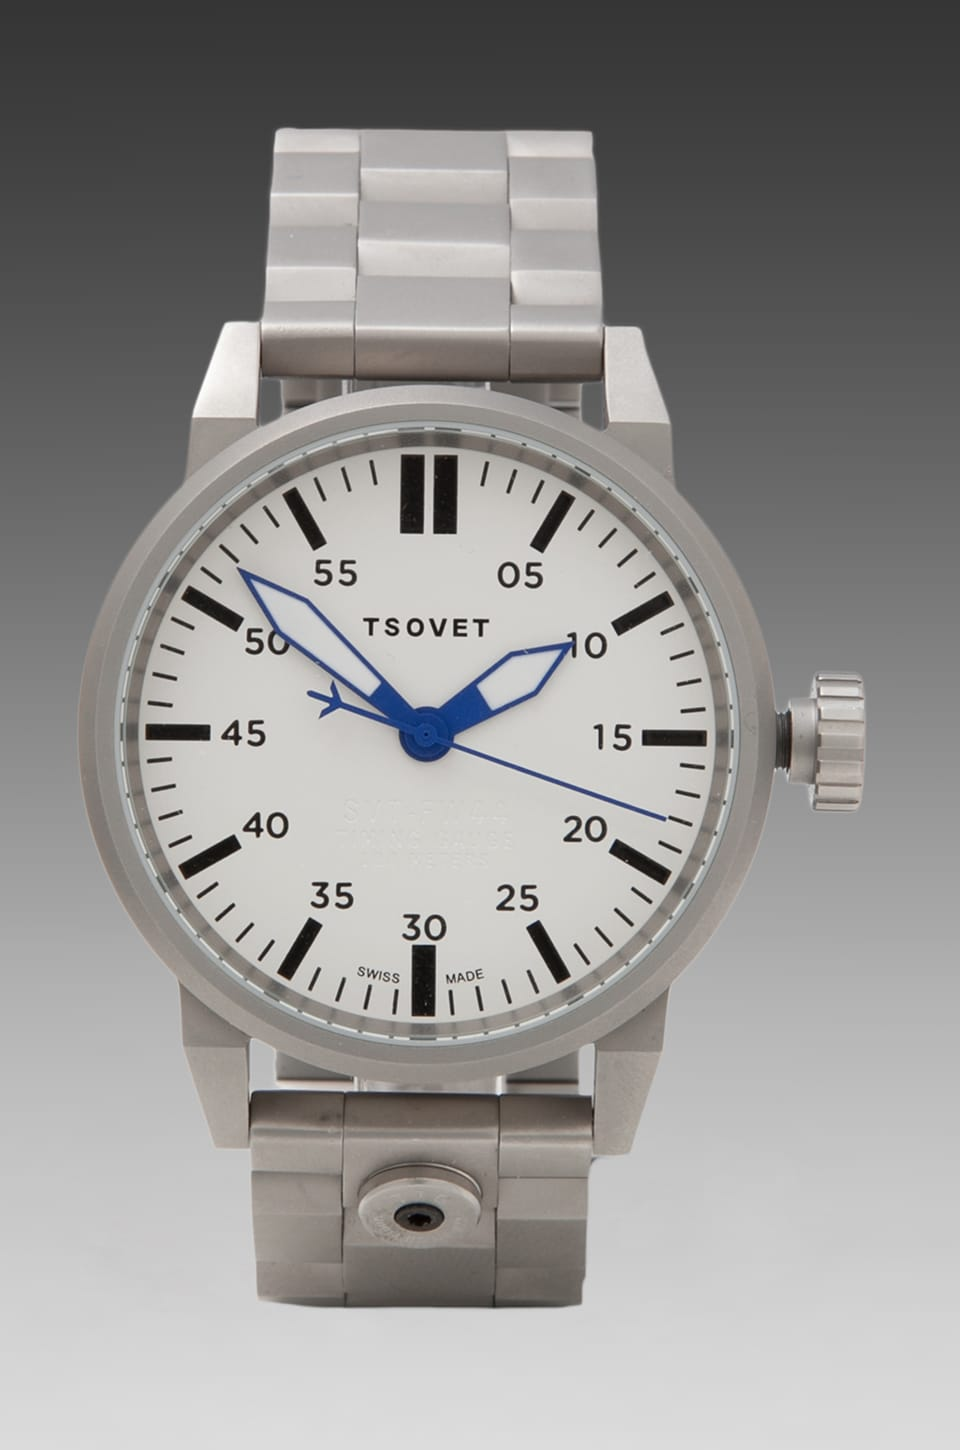 Tsovet SVT-FW44 44mm in White/Blue